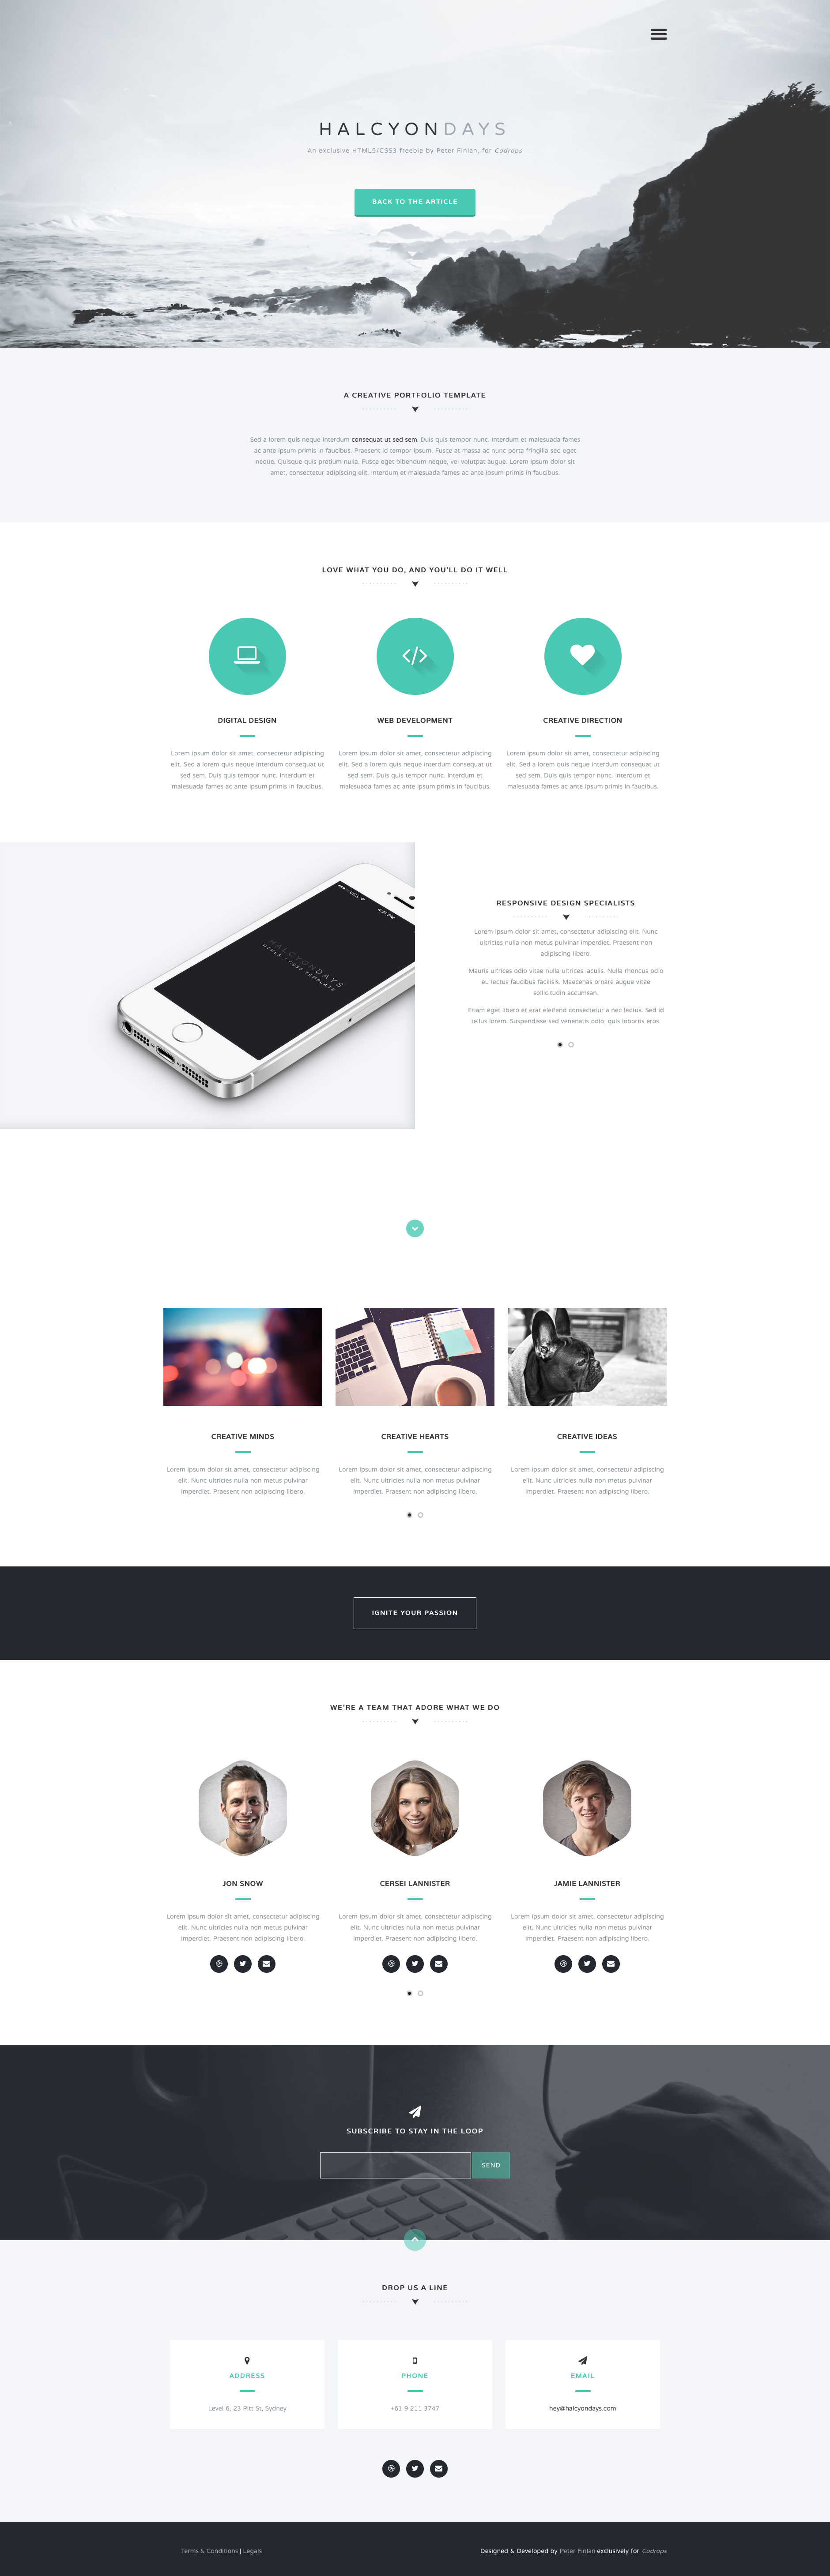 Halcyon Days Is A Minimalist Free Responsive Html5 One Page Website